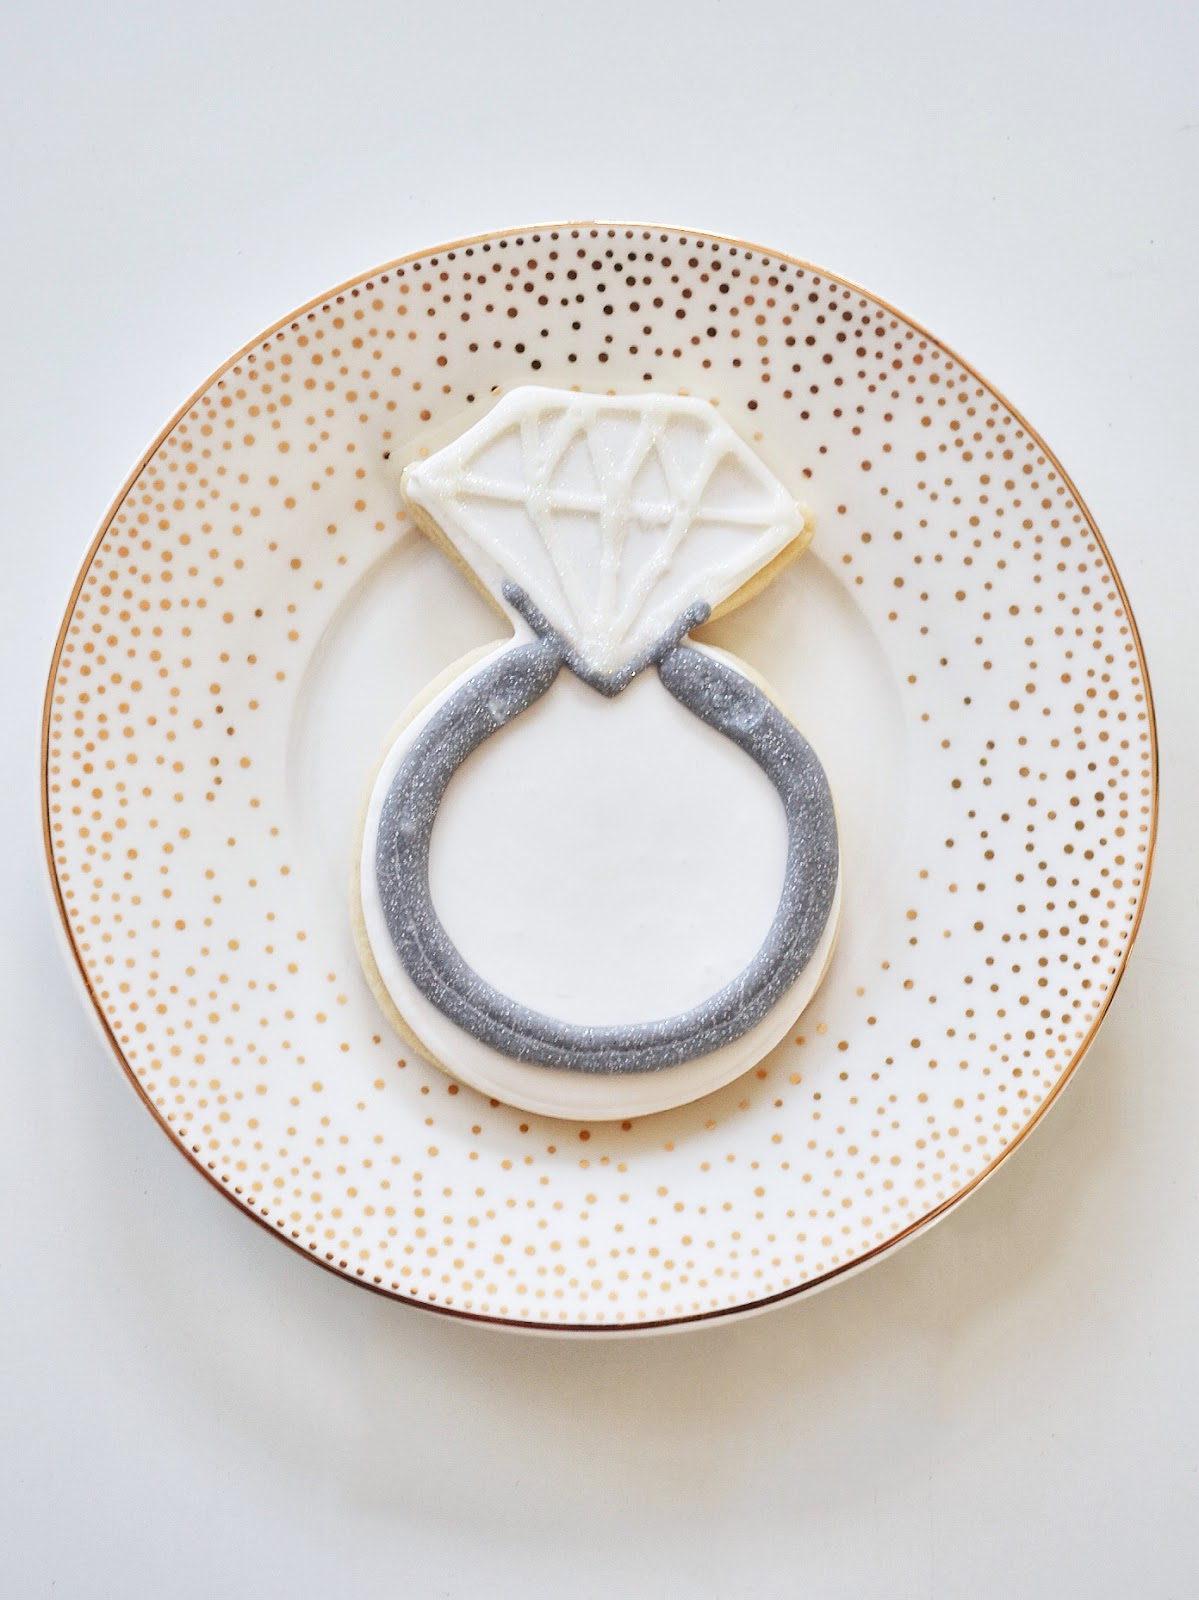 Engagement party champagne brunch homemade sugar cookies engagement ring